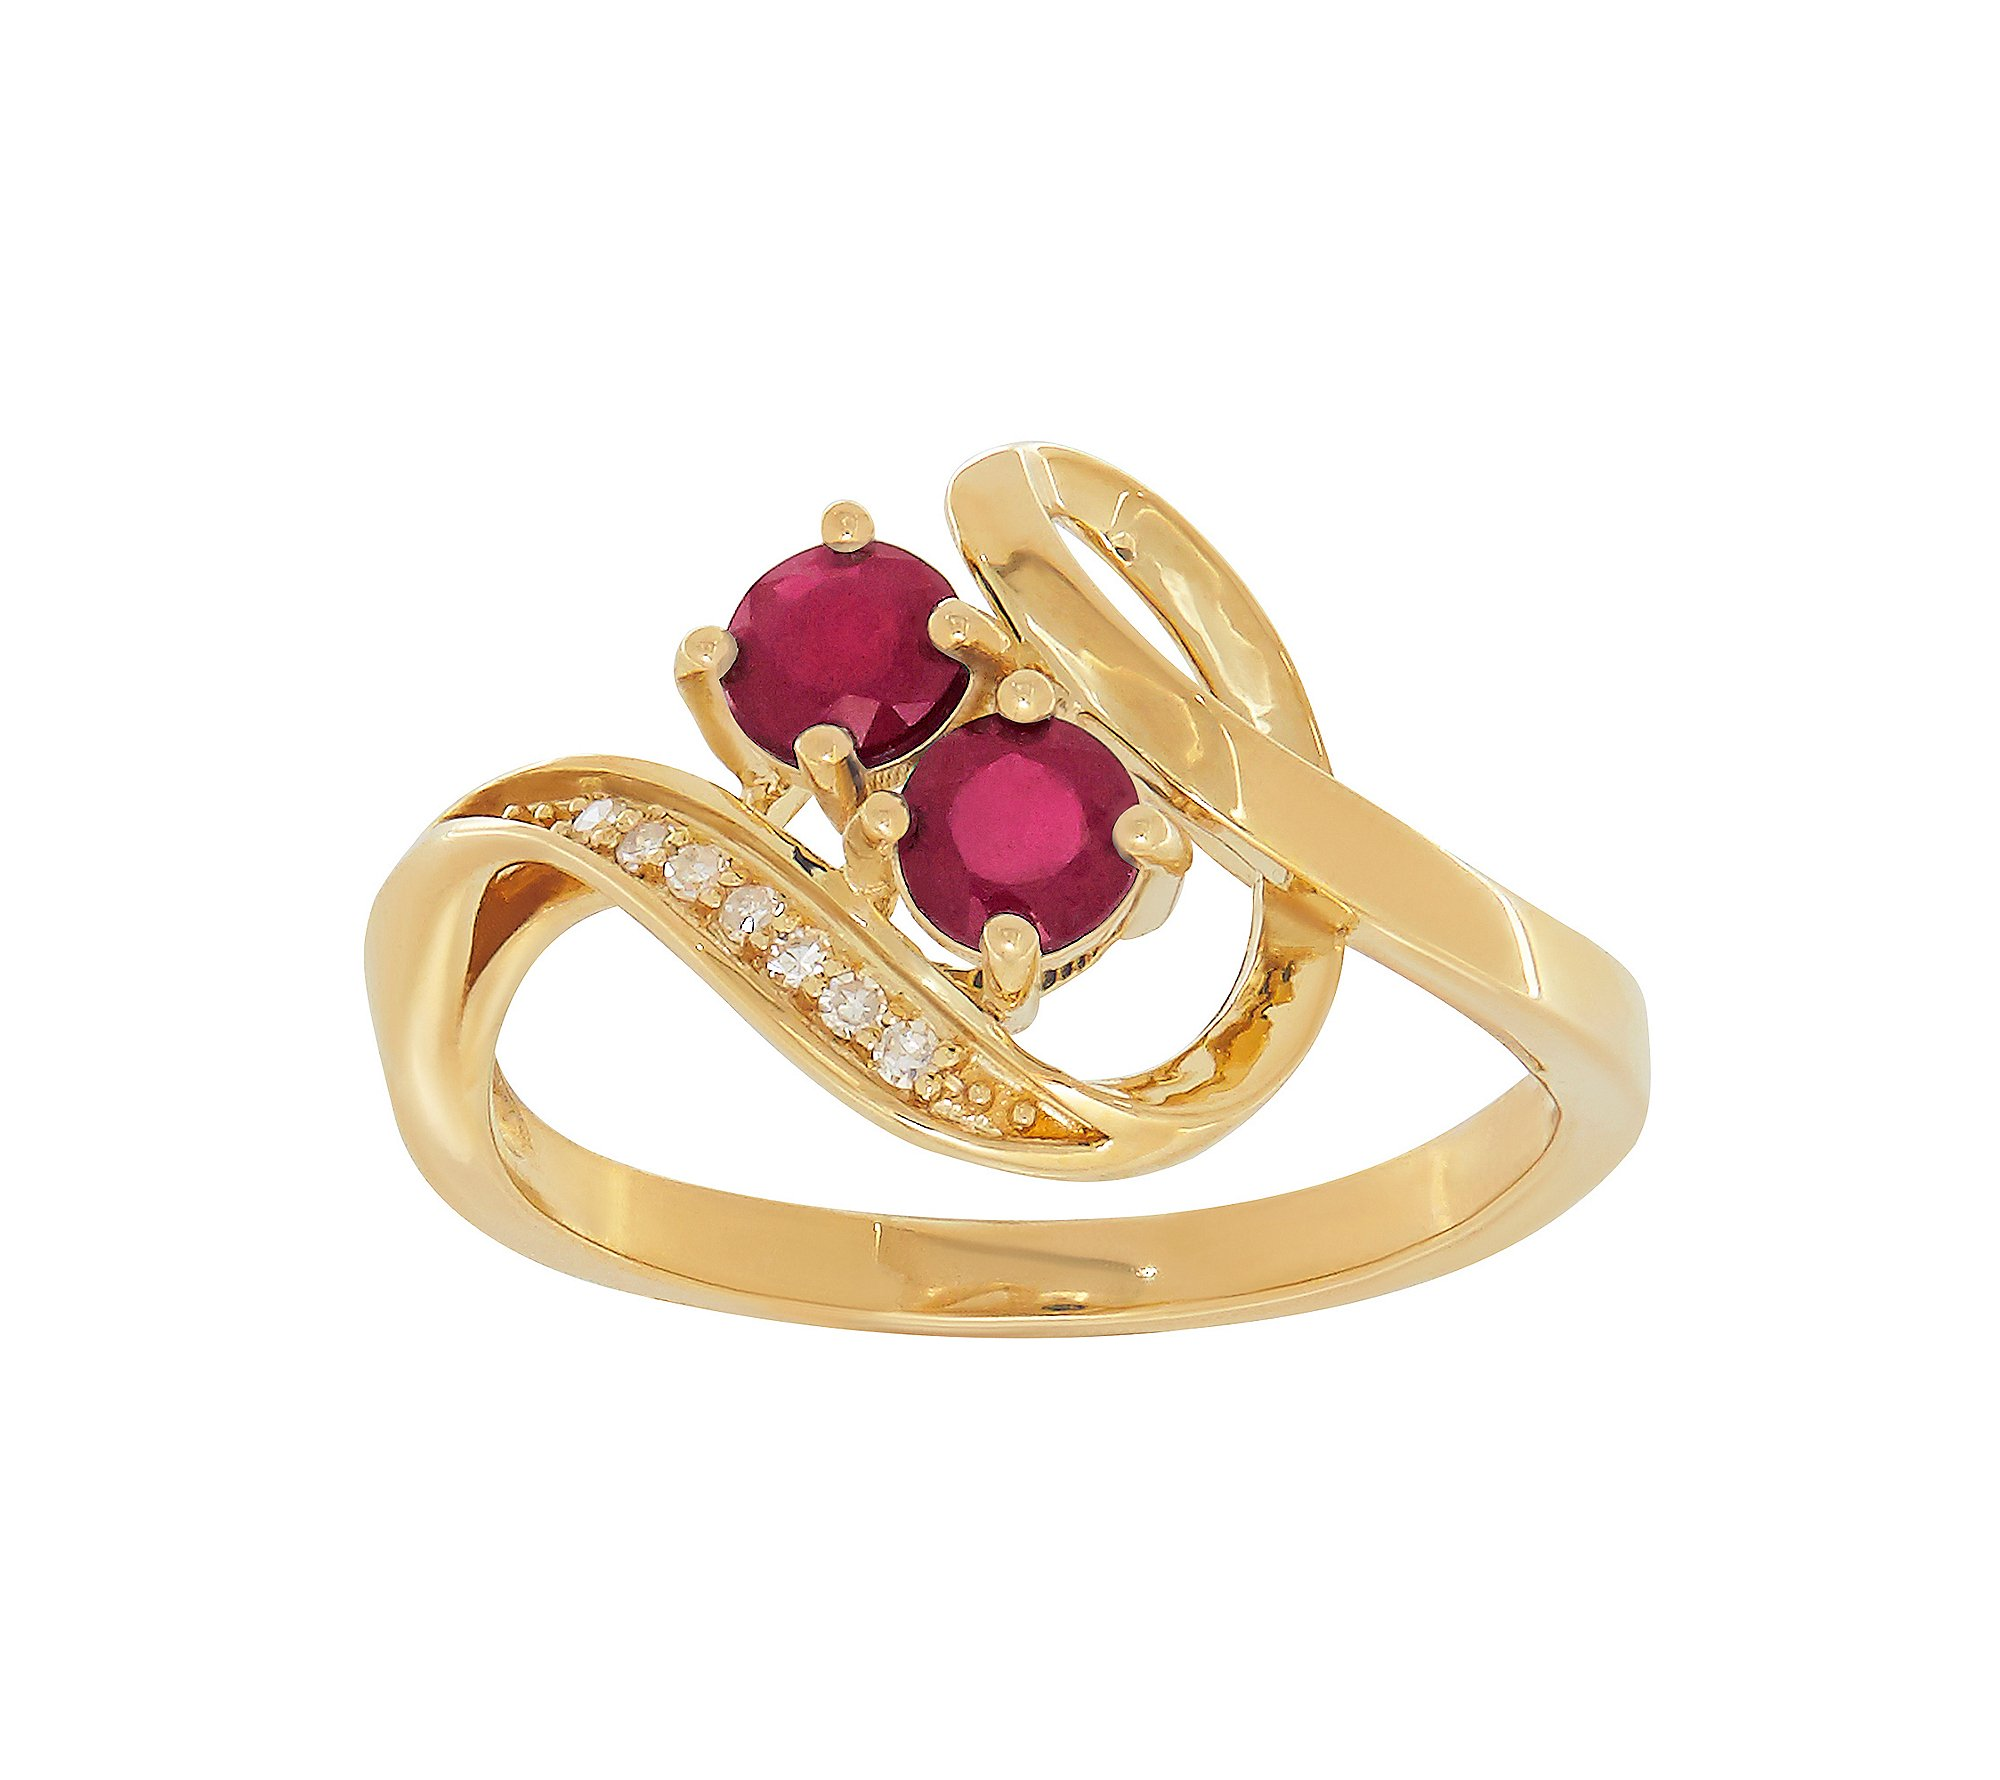 Two Stone Glass-filled Ruby Ring in 10K Yellow Gold with 0.03 ct. t.w. Diamond Accent by Fine Jewelry